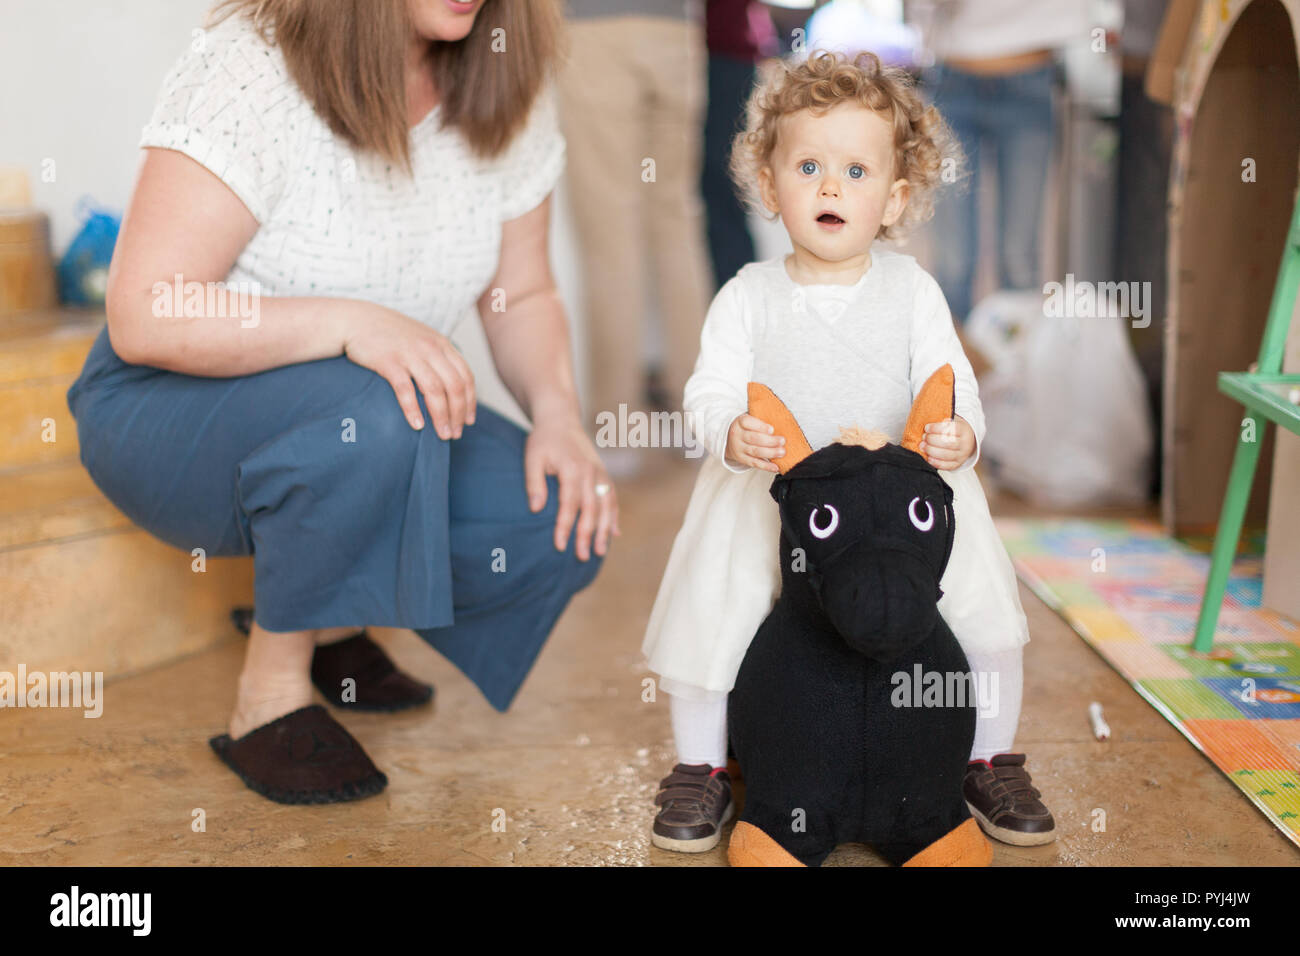 Curly little girl sitting on a black donkey toy and woman near in the white t-shitr and blue trousers sitting down at home with people in the backgrou - Stock Image